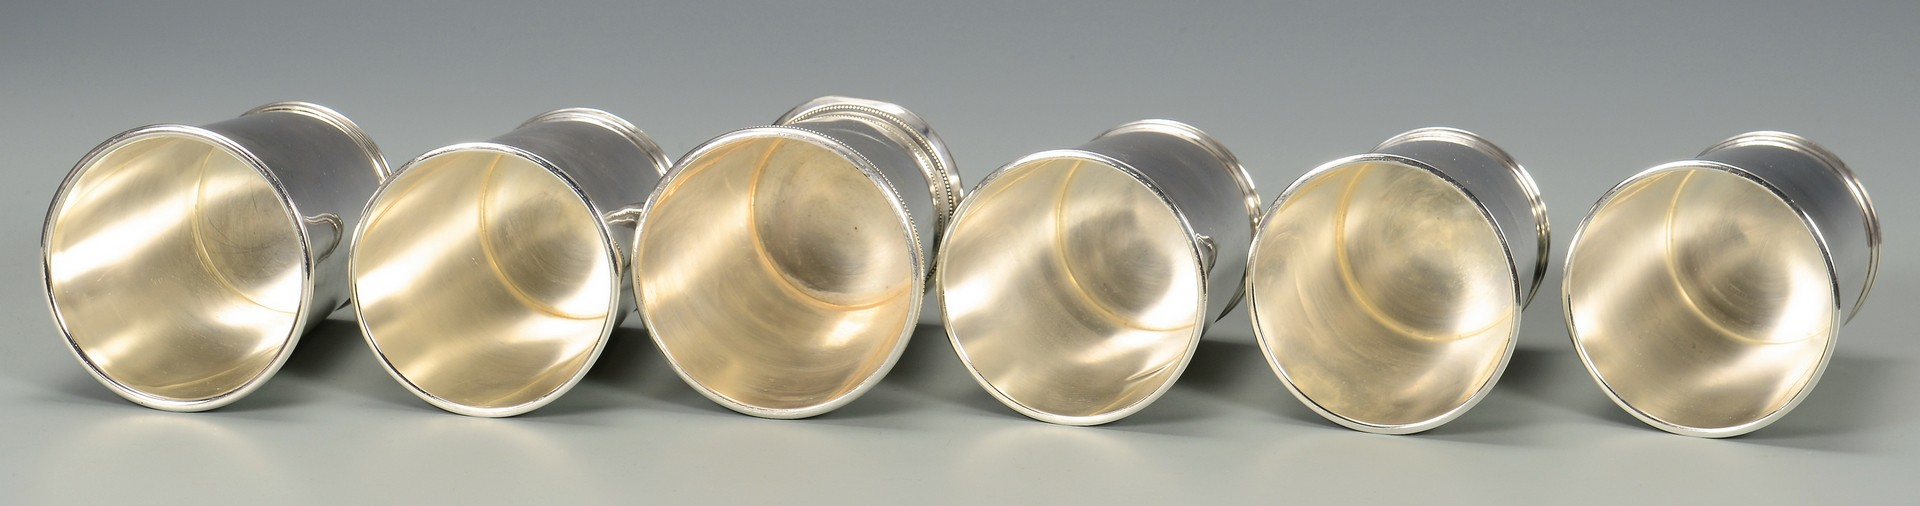 Lot 814: 5 Sterling Silver Julep Cups